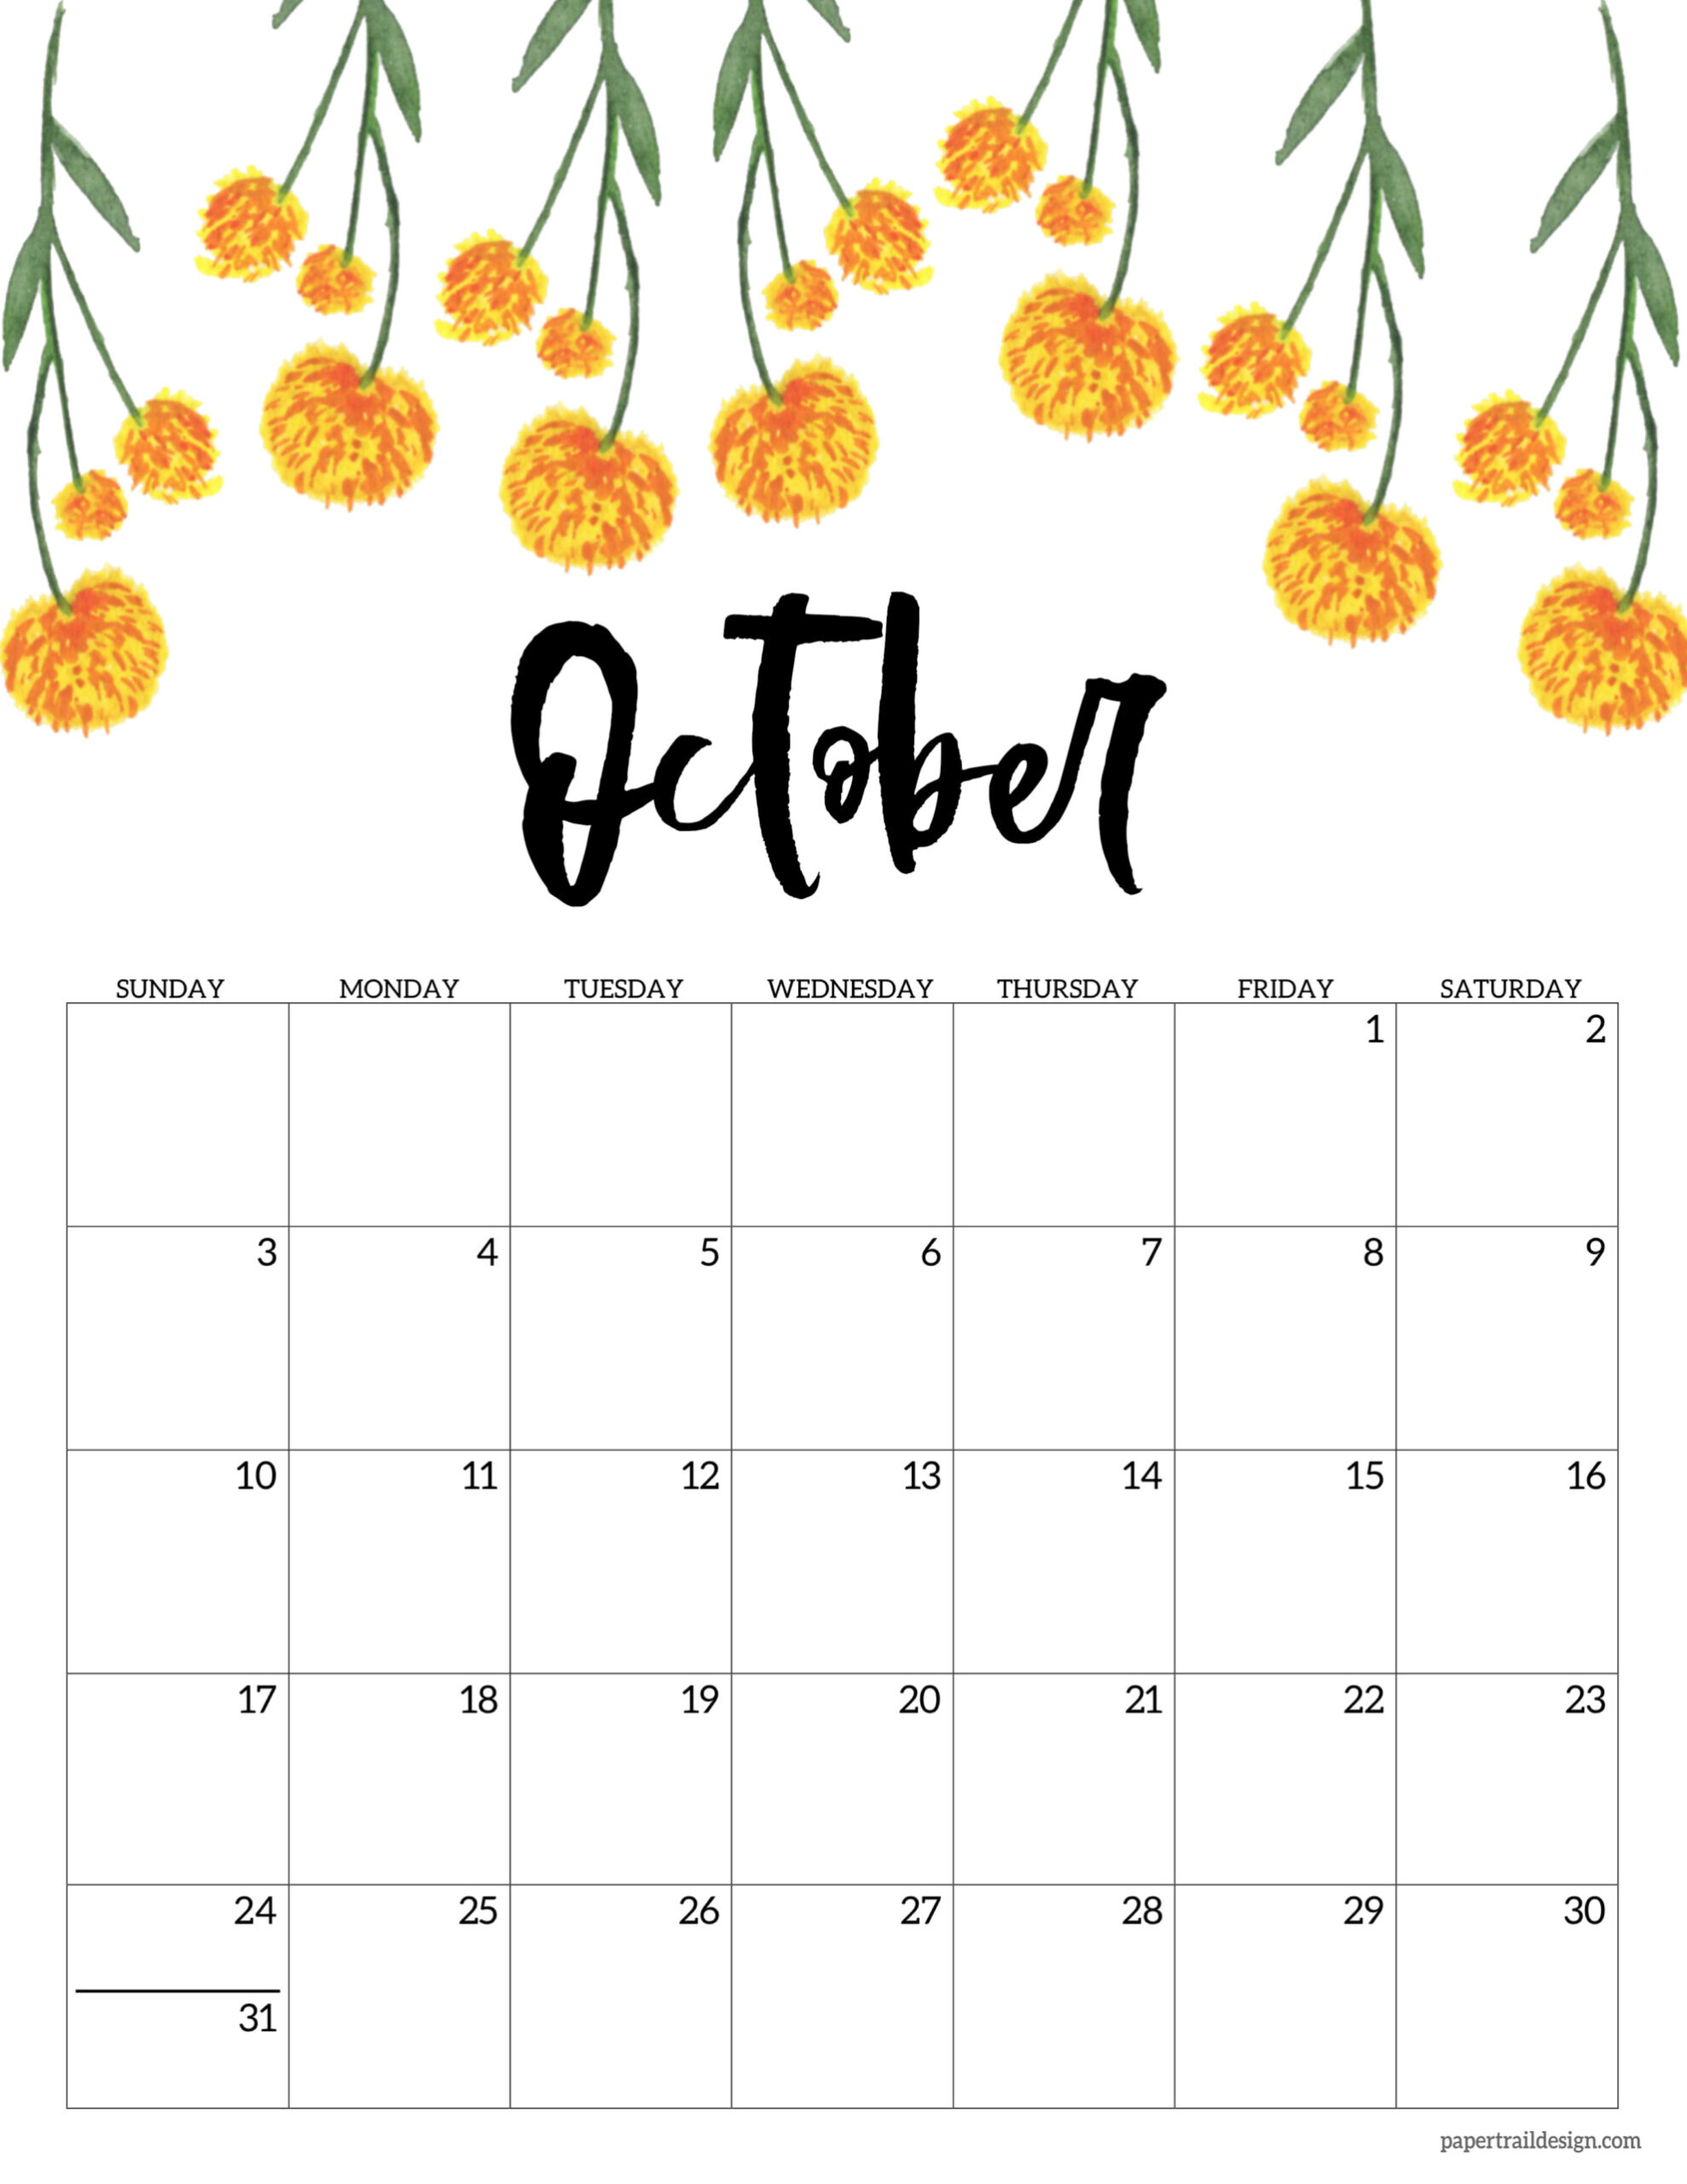 Cute September 2021 Calendar Printable | Free 2021 ...